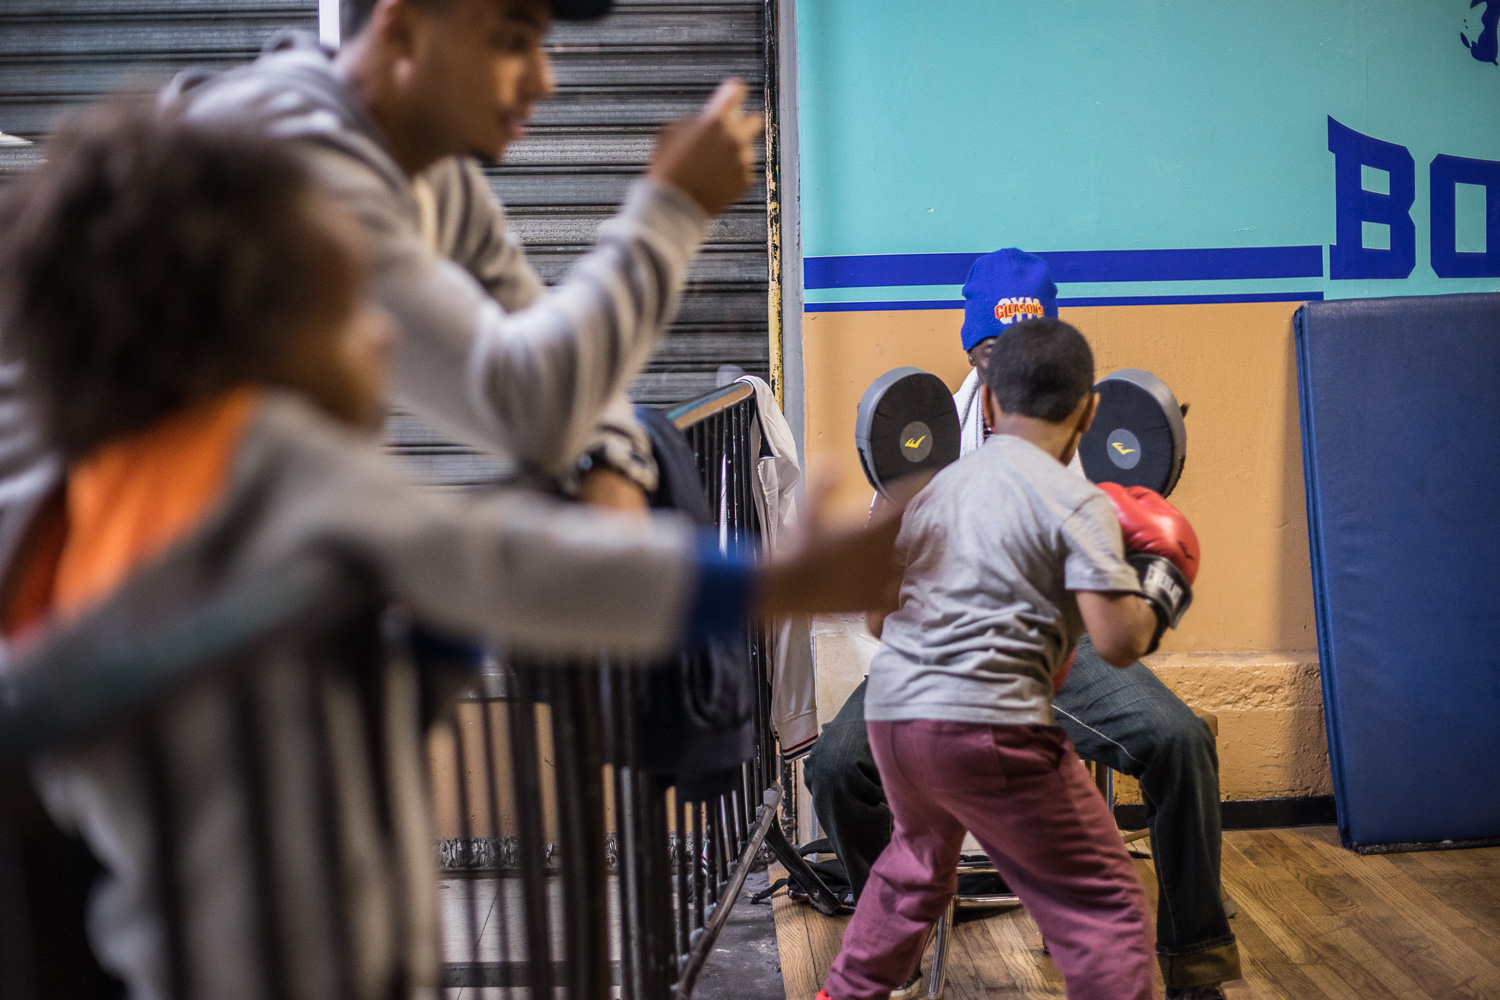 """""""Some days, I've so many kids I don't know where to put them, so I put them in the gym and get them moving around"""", says Nate Boyd, head boxing coach at the gym."""